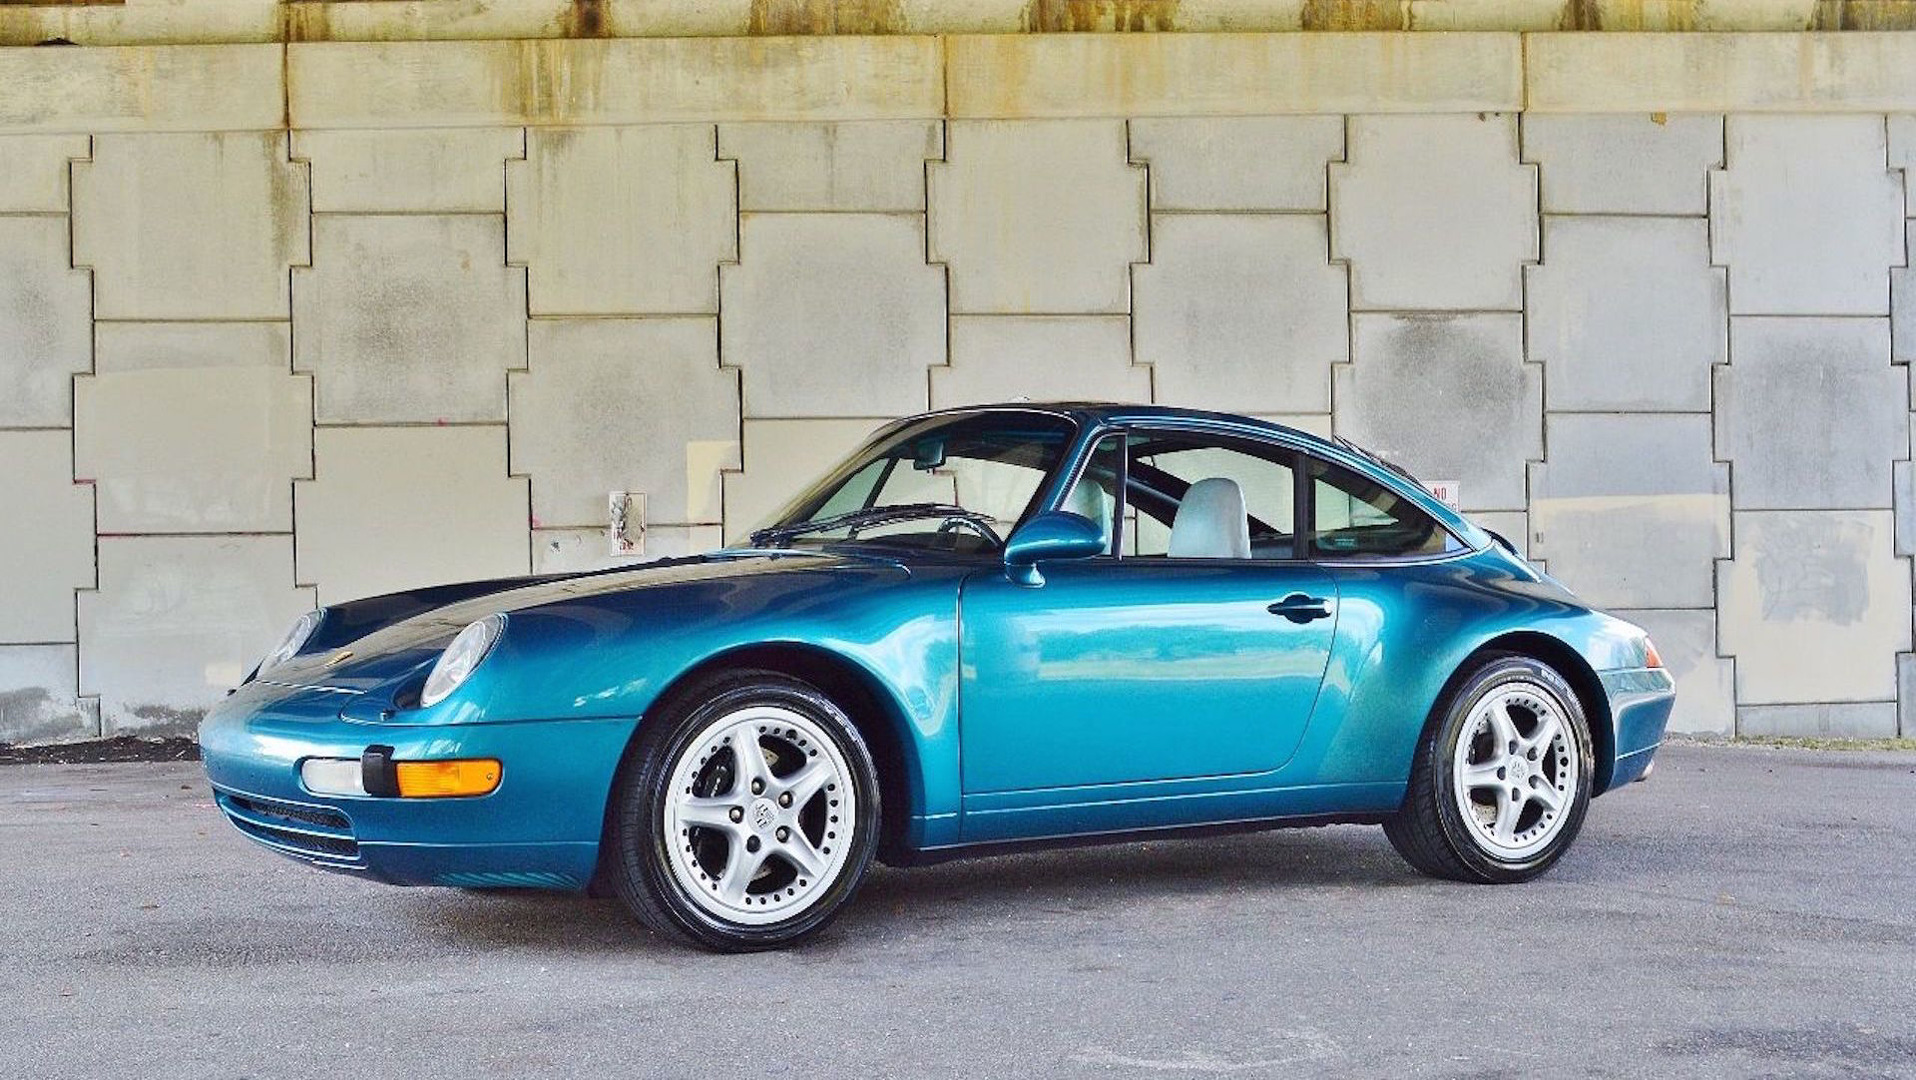 Teal Porsche 993 Targa eBay Find Is Pure '90s Nostalgia